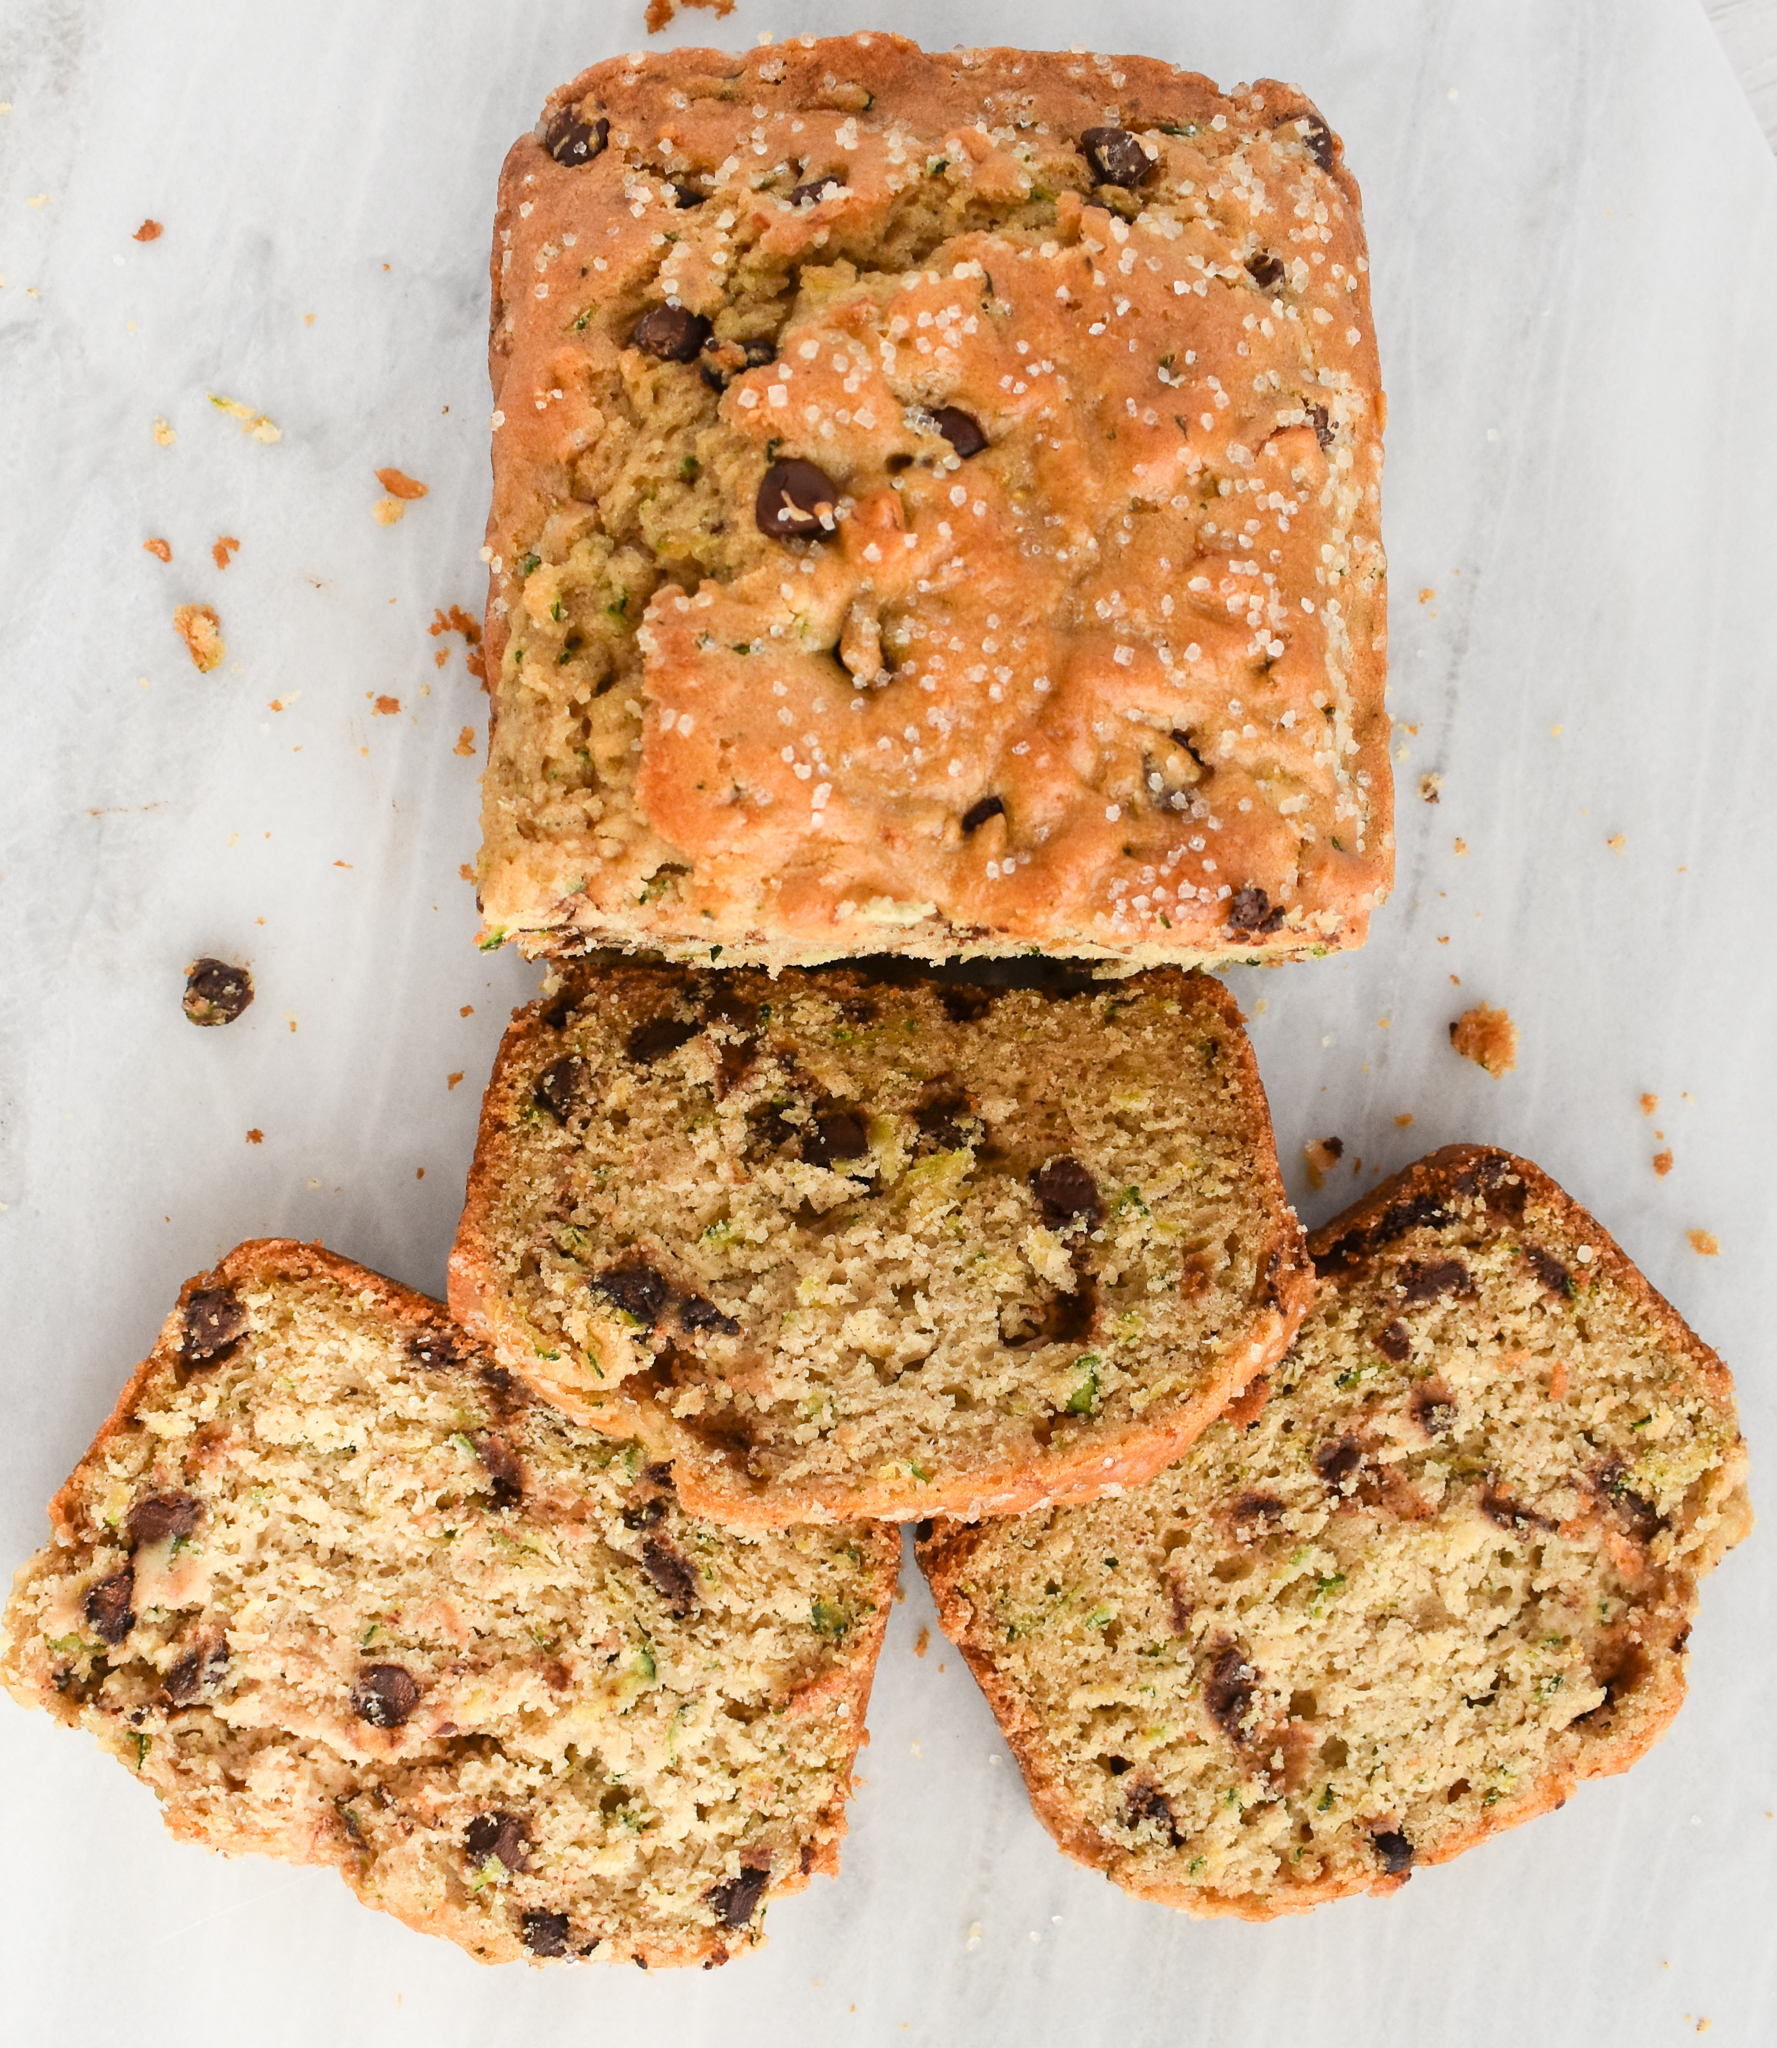 The Moistest Low Fodmap Zucchini Bread With Chocolate Chips Gluten Free Dairy Free Rachel Pauls Food